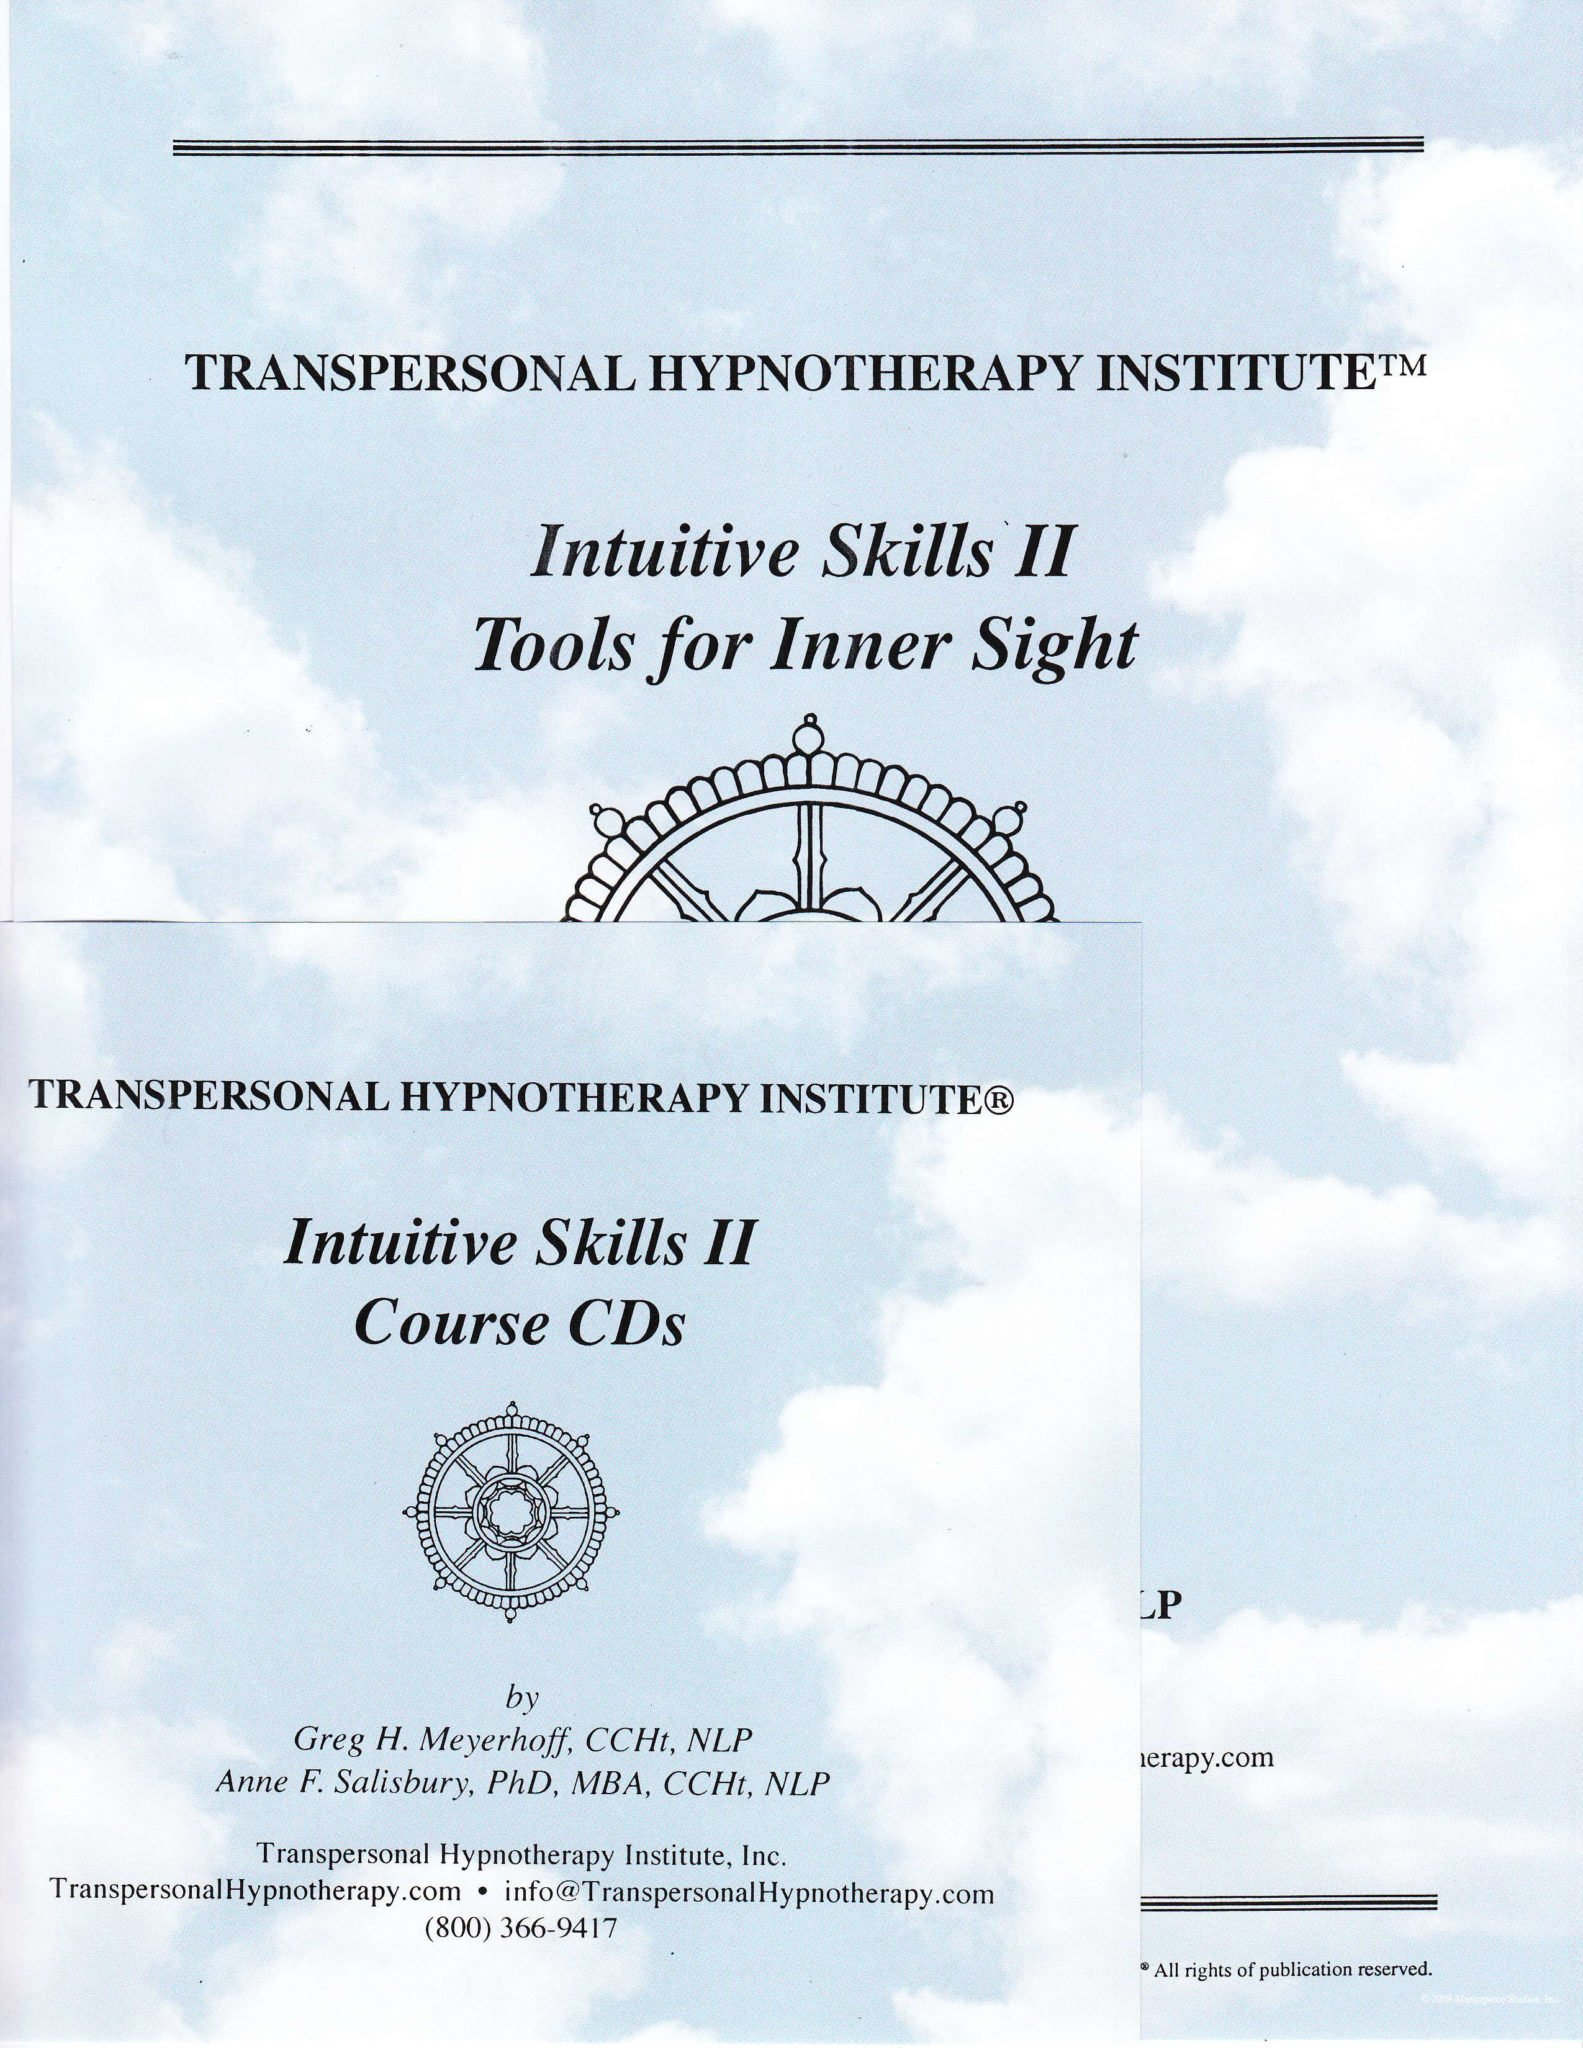 Intuitive Skills 2, Tools for Inner Sight Course